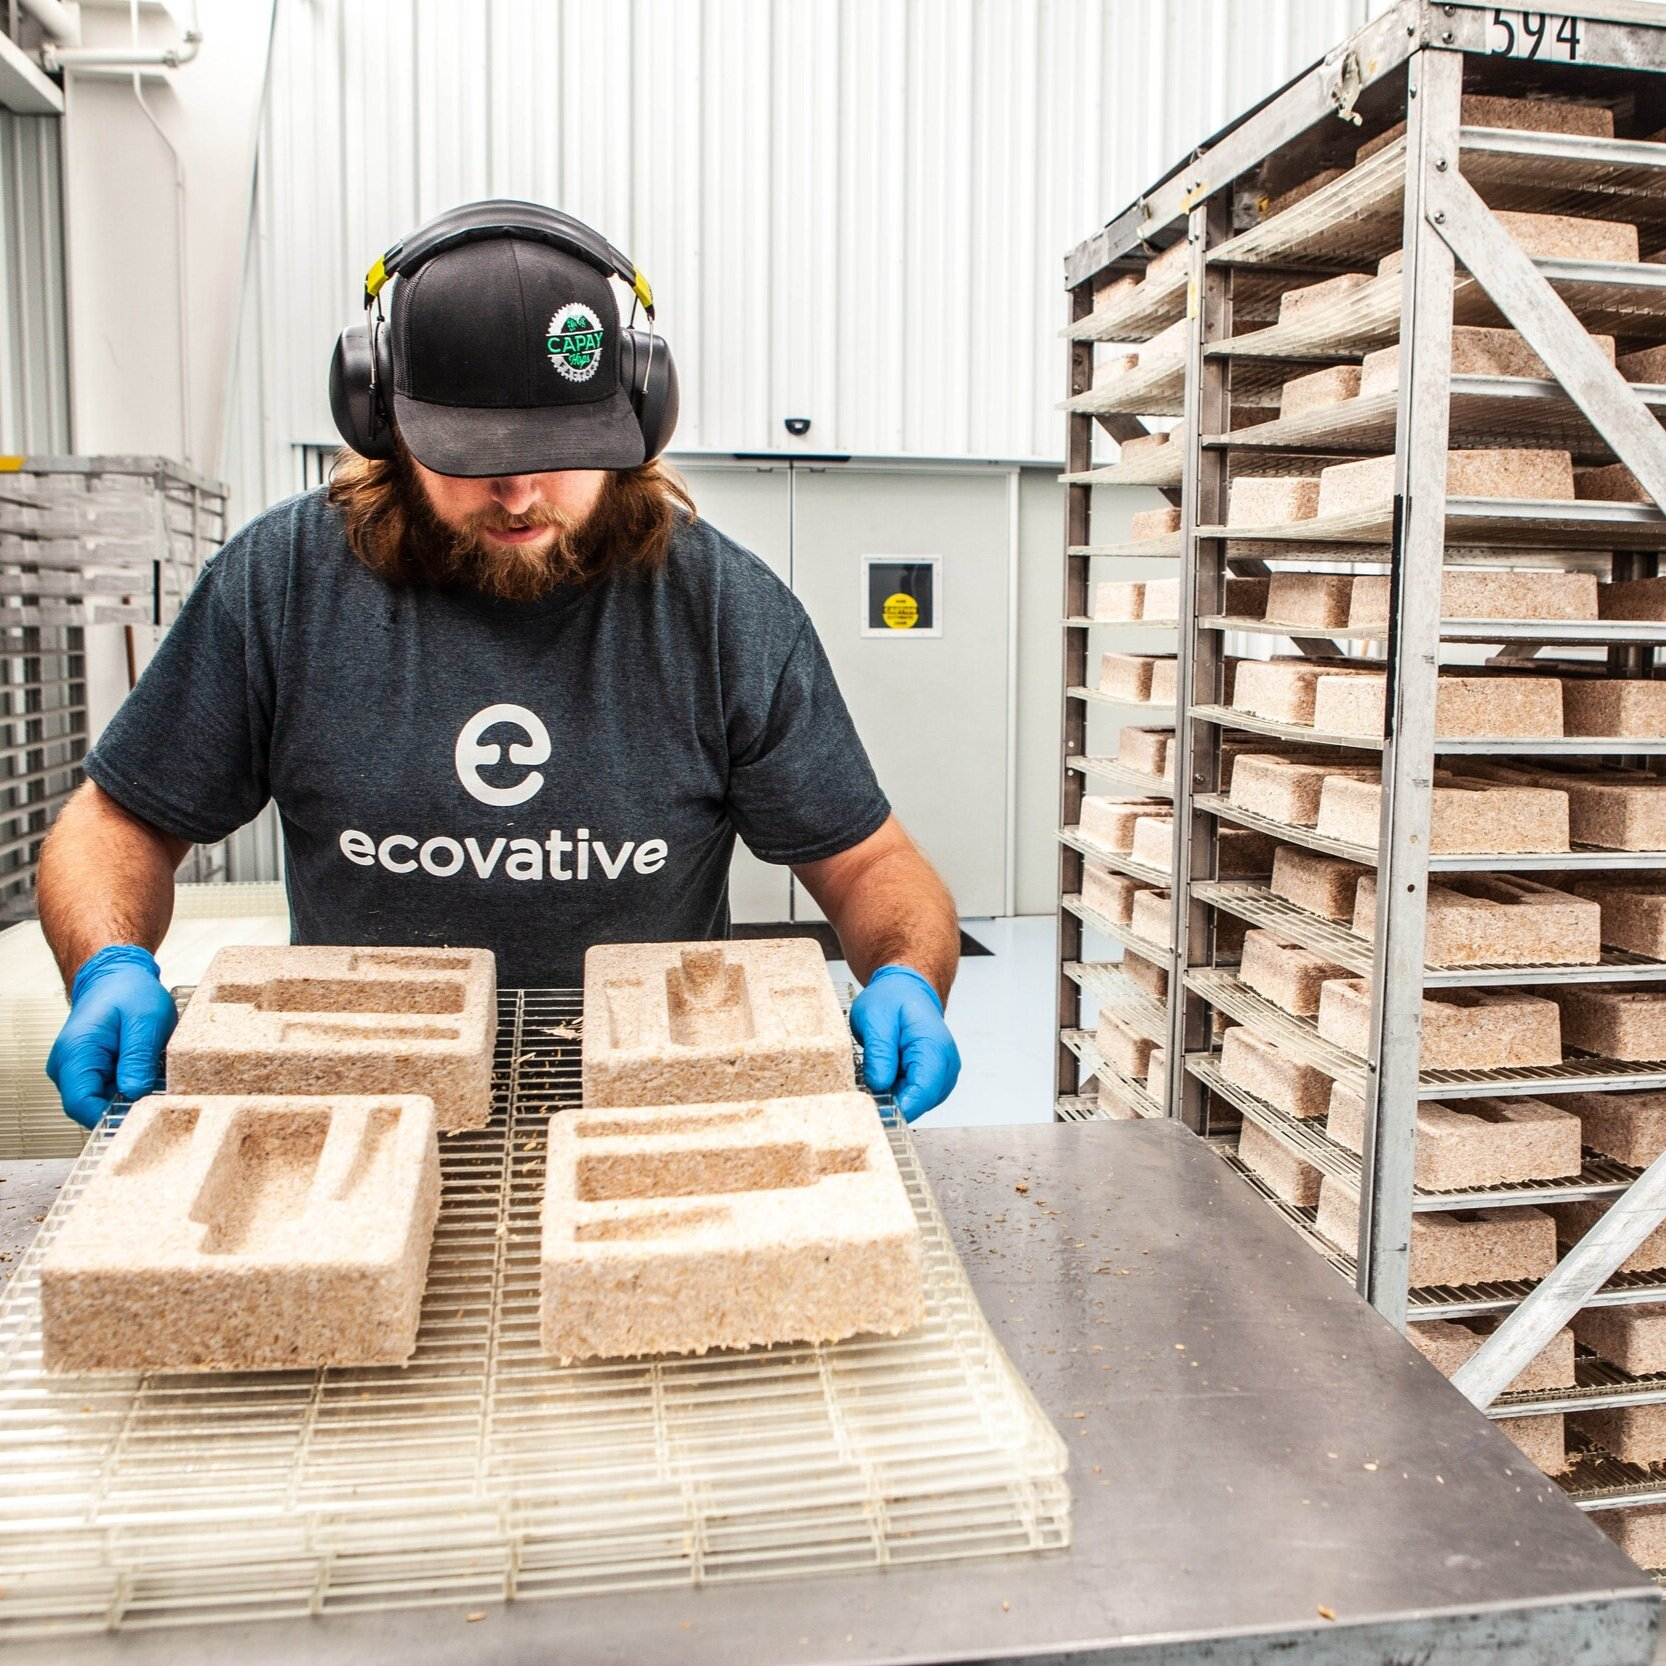 Paradise Packaging Co. - Paradise Packaging is the main hub for growth and distribution of Mushroom® Packaging across the US, located in sunny California.